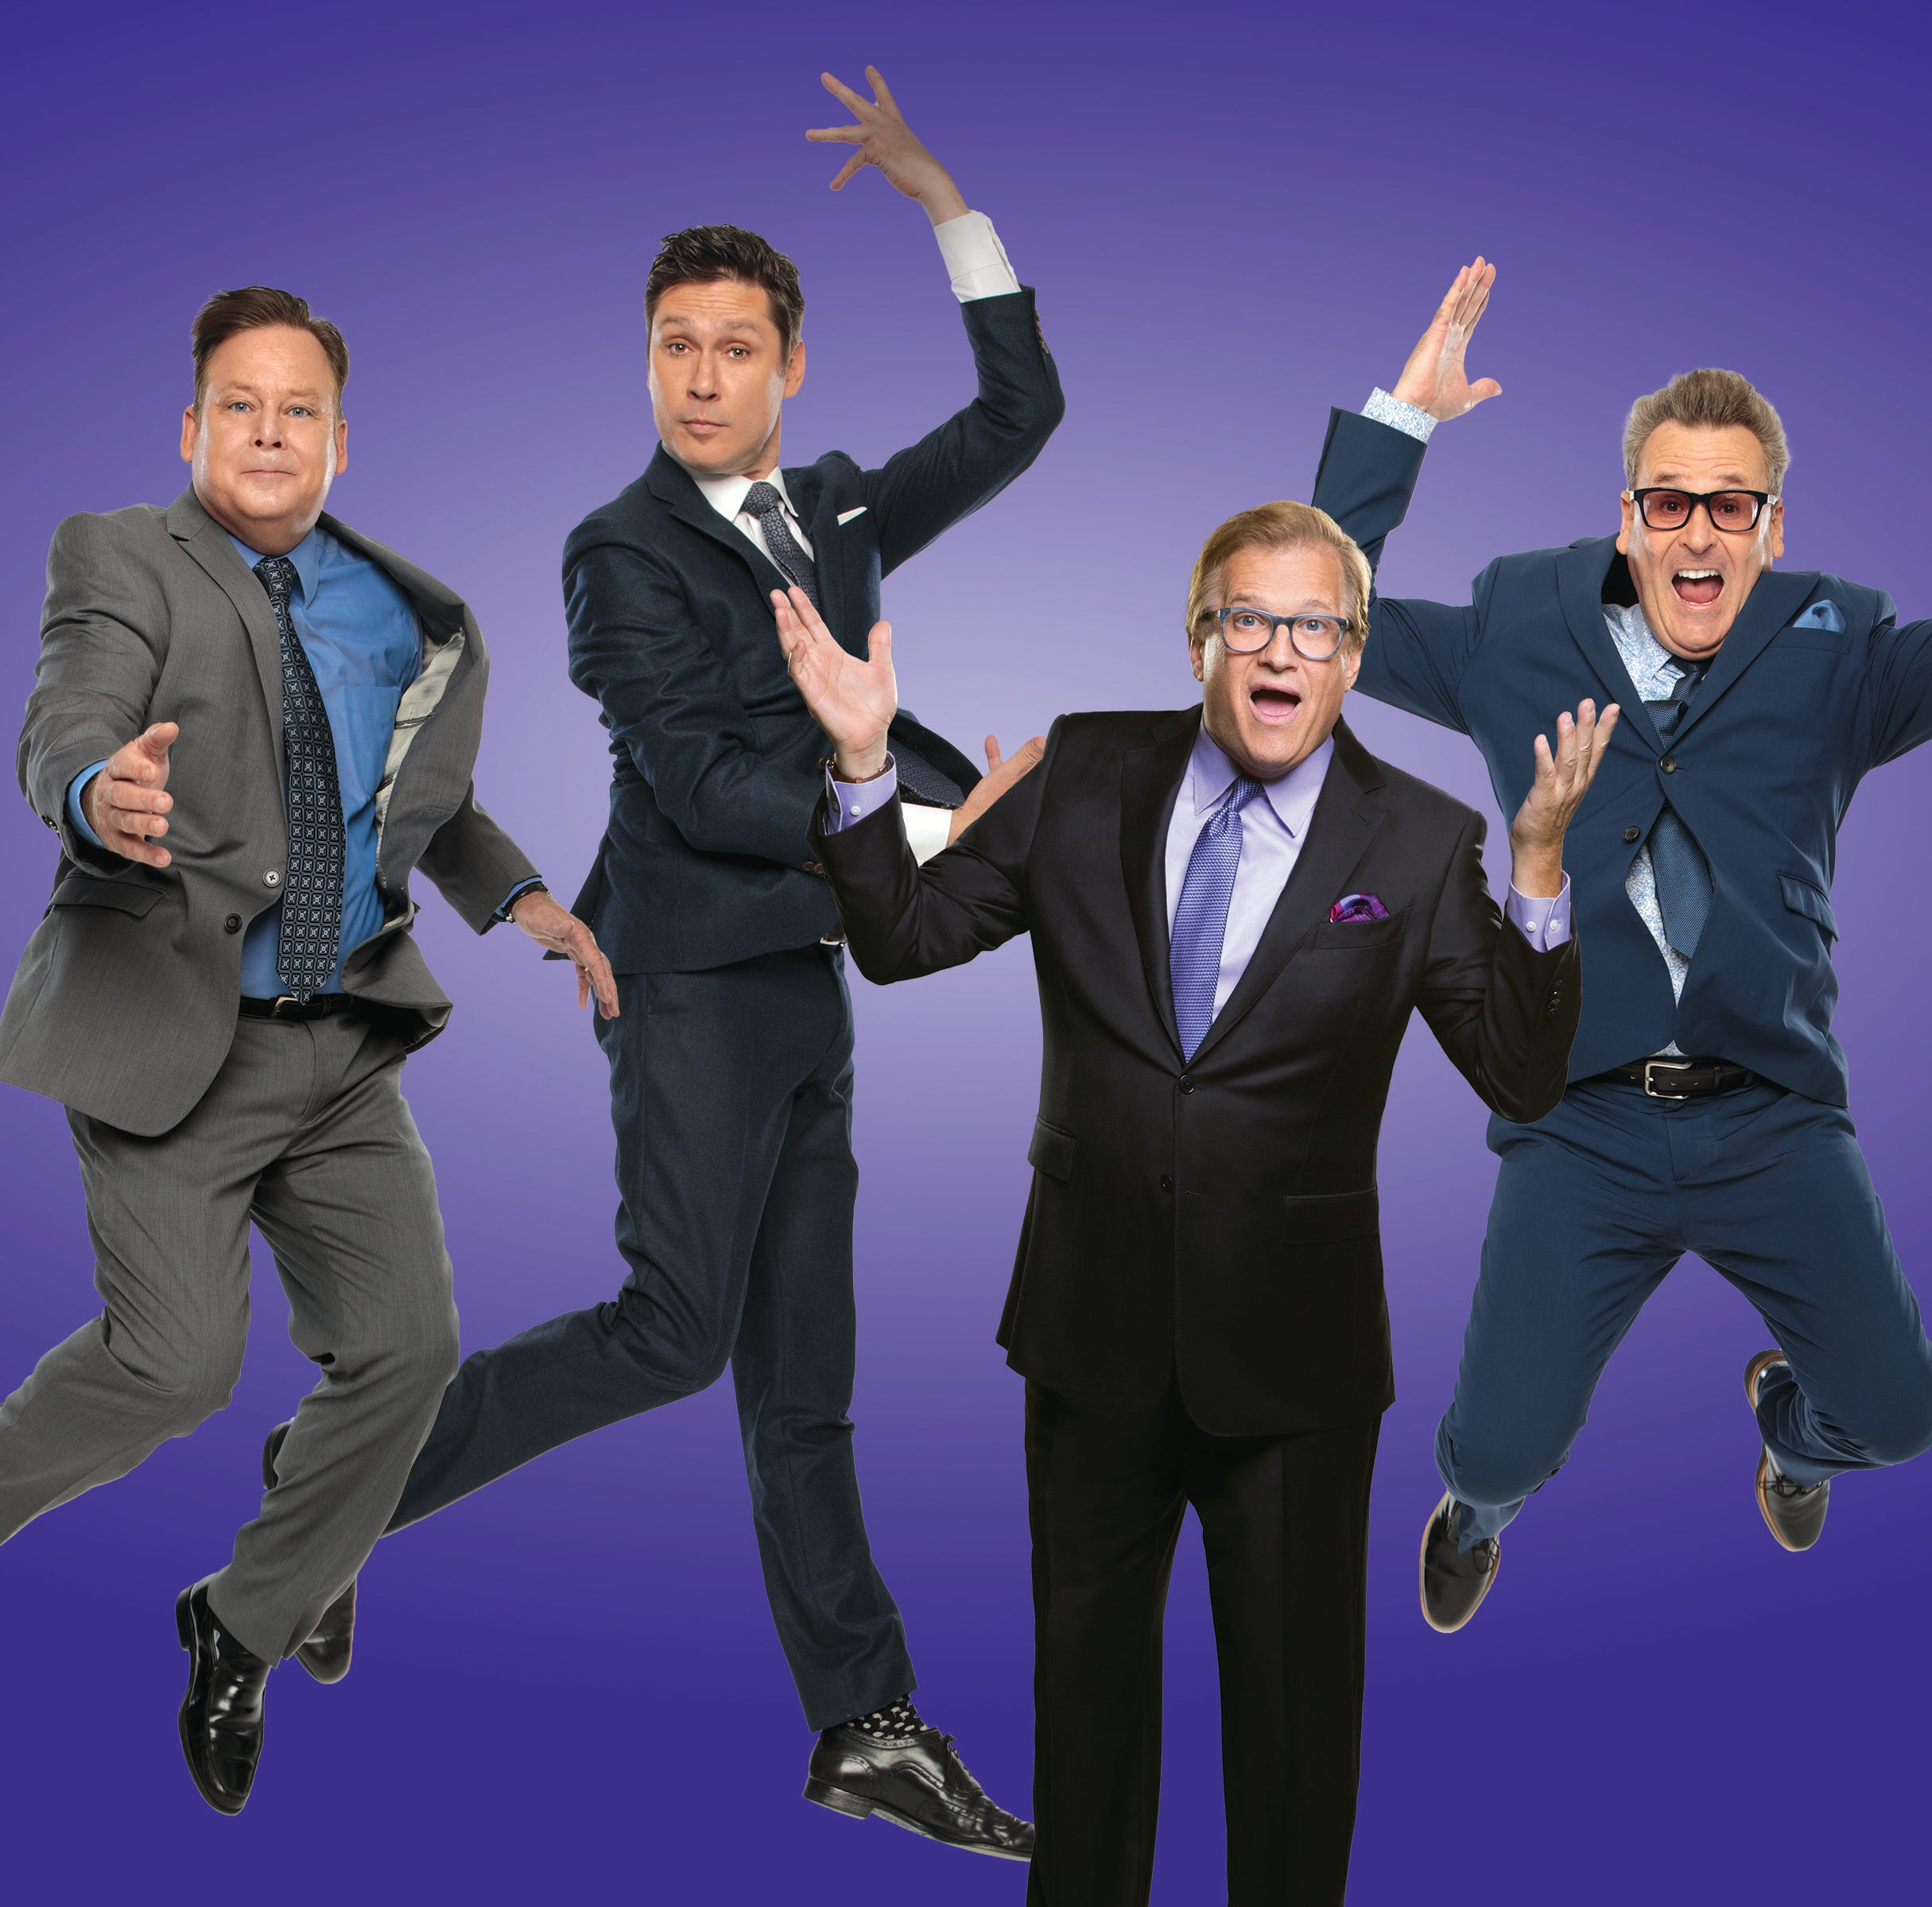 Drew Carey, Live 'Whose Line Is It Anyway?' coming to UPAC